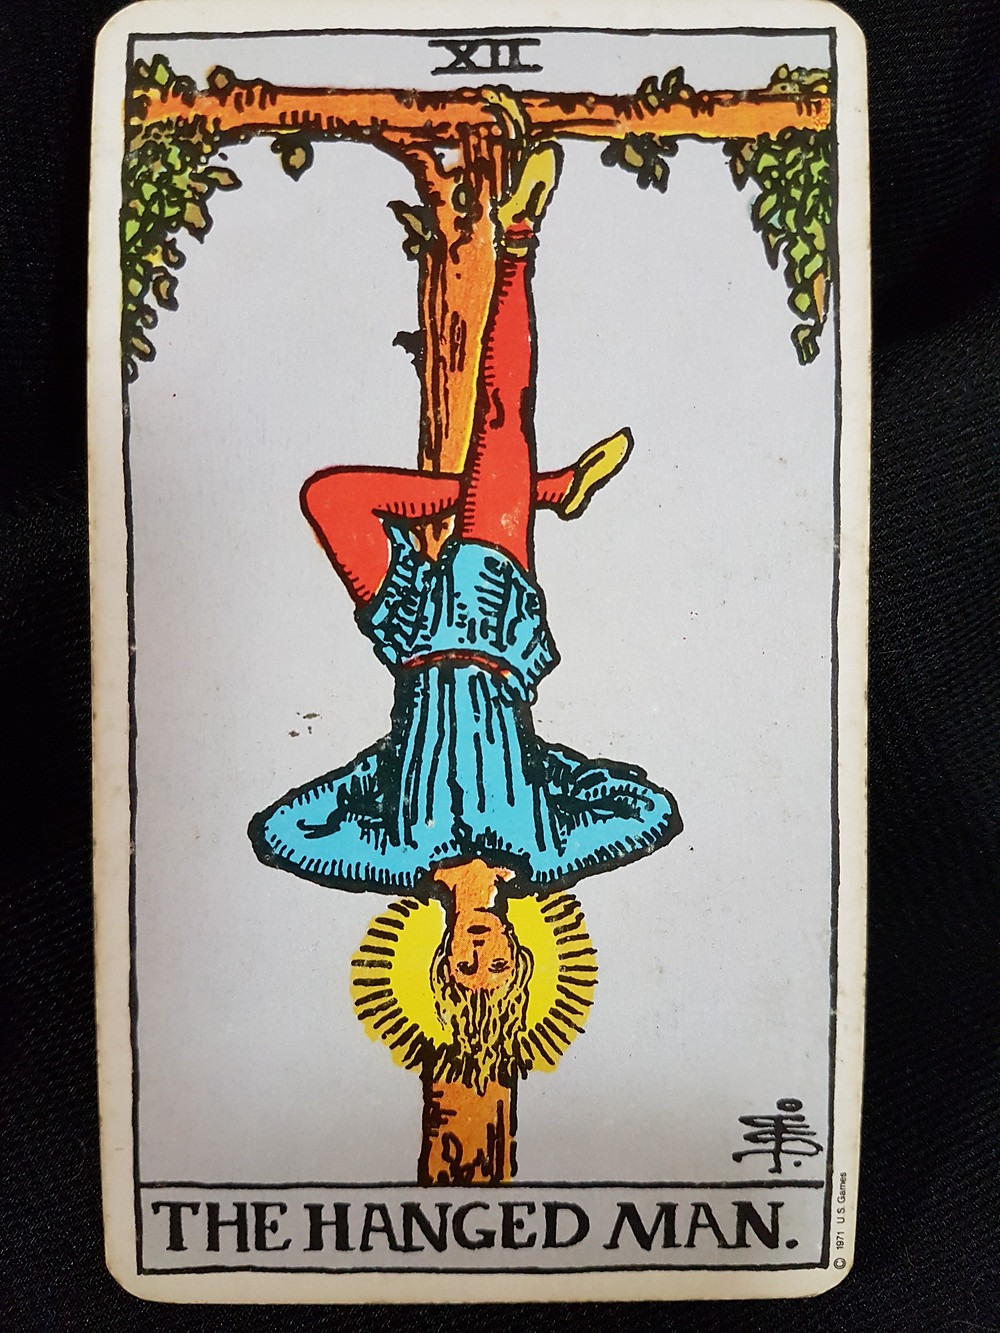 The Hanged Man 12 -lynsreadings.com